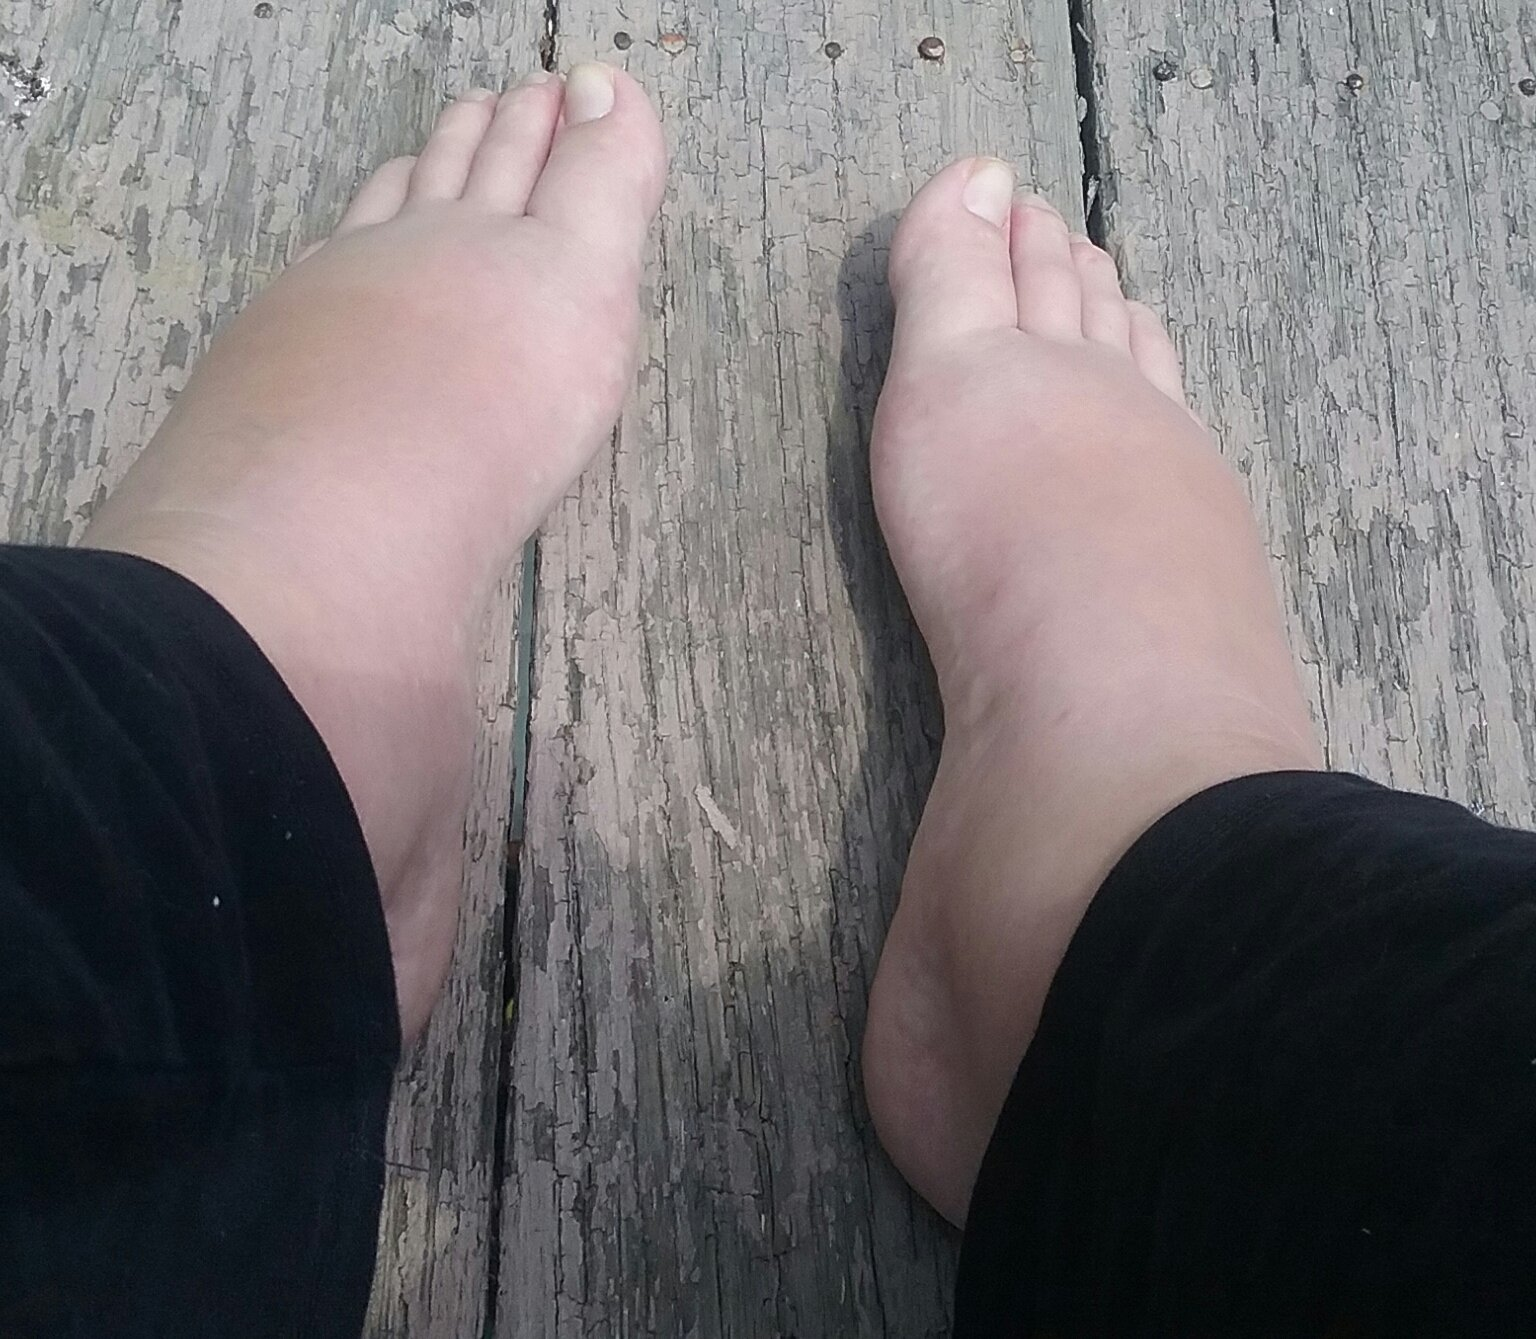 Swollen feet, borderline preeclampsia (picture included ...Preeclampsia Swelling Vs Normal Swelling